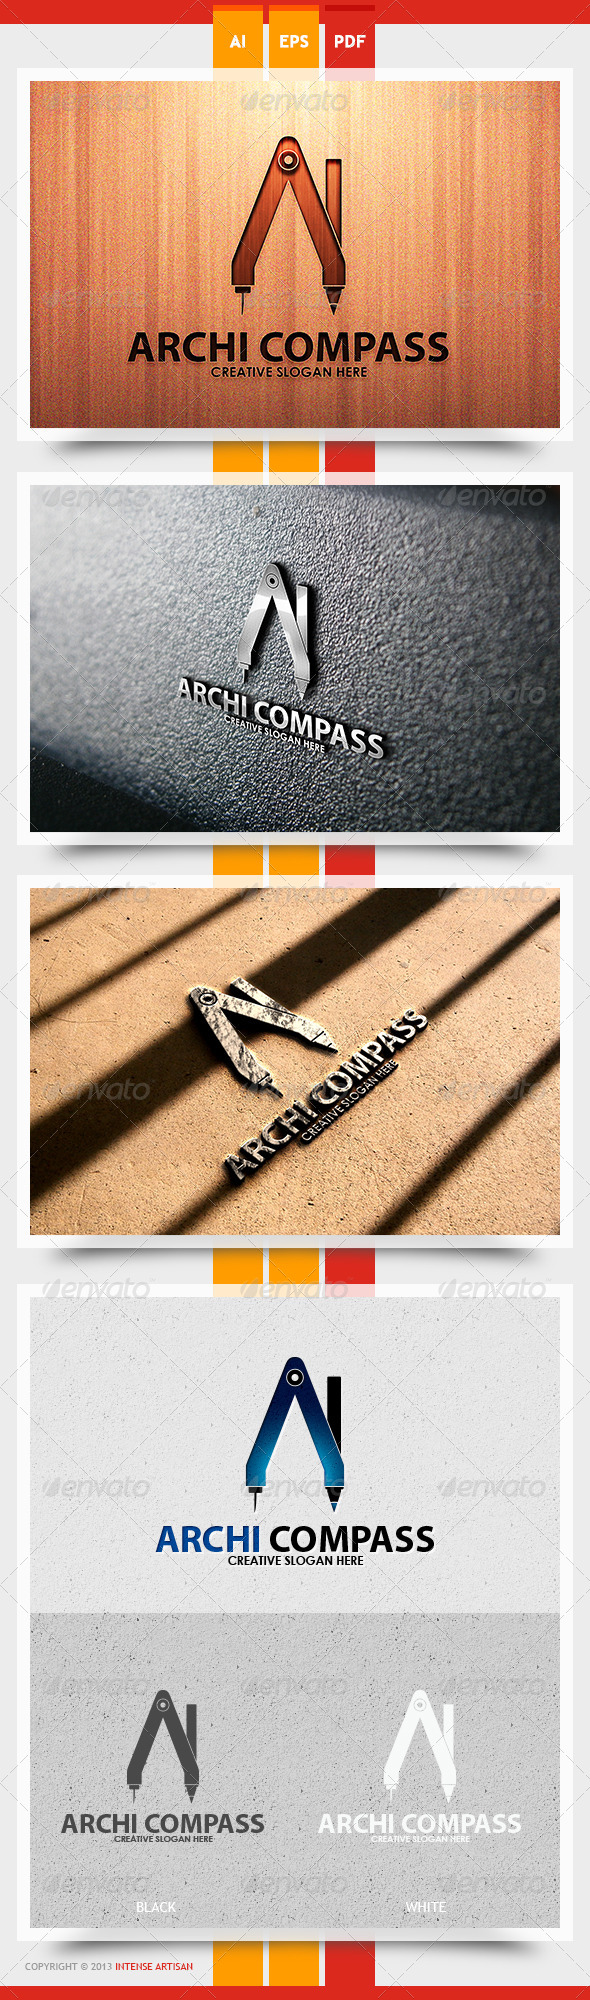 Archi Compass Logo Template - Objects Logo Templates